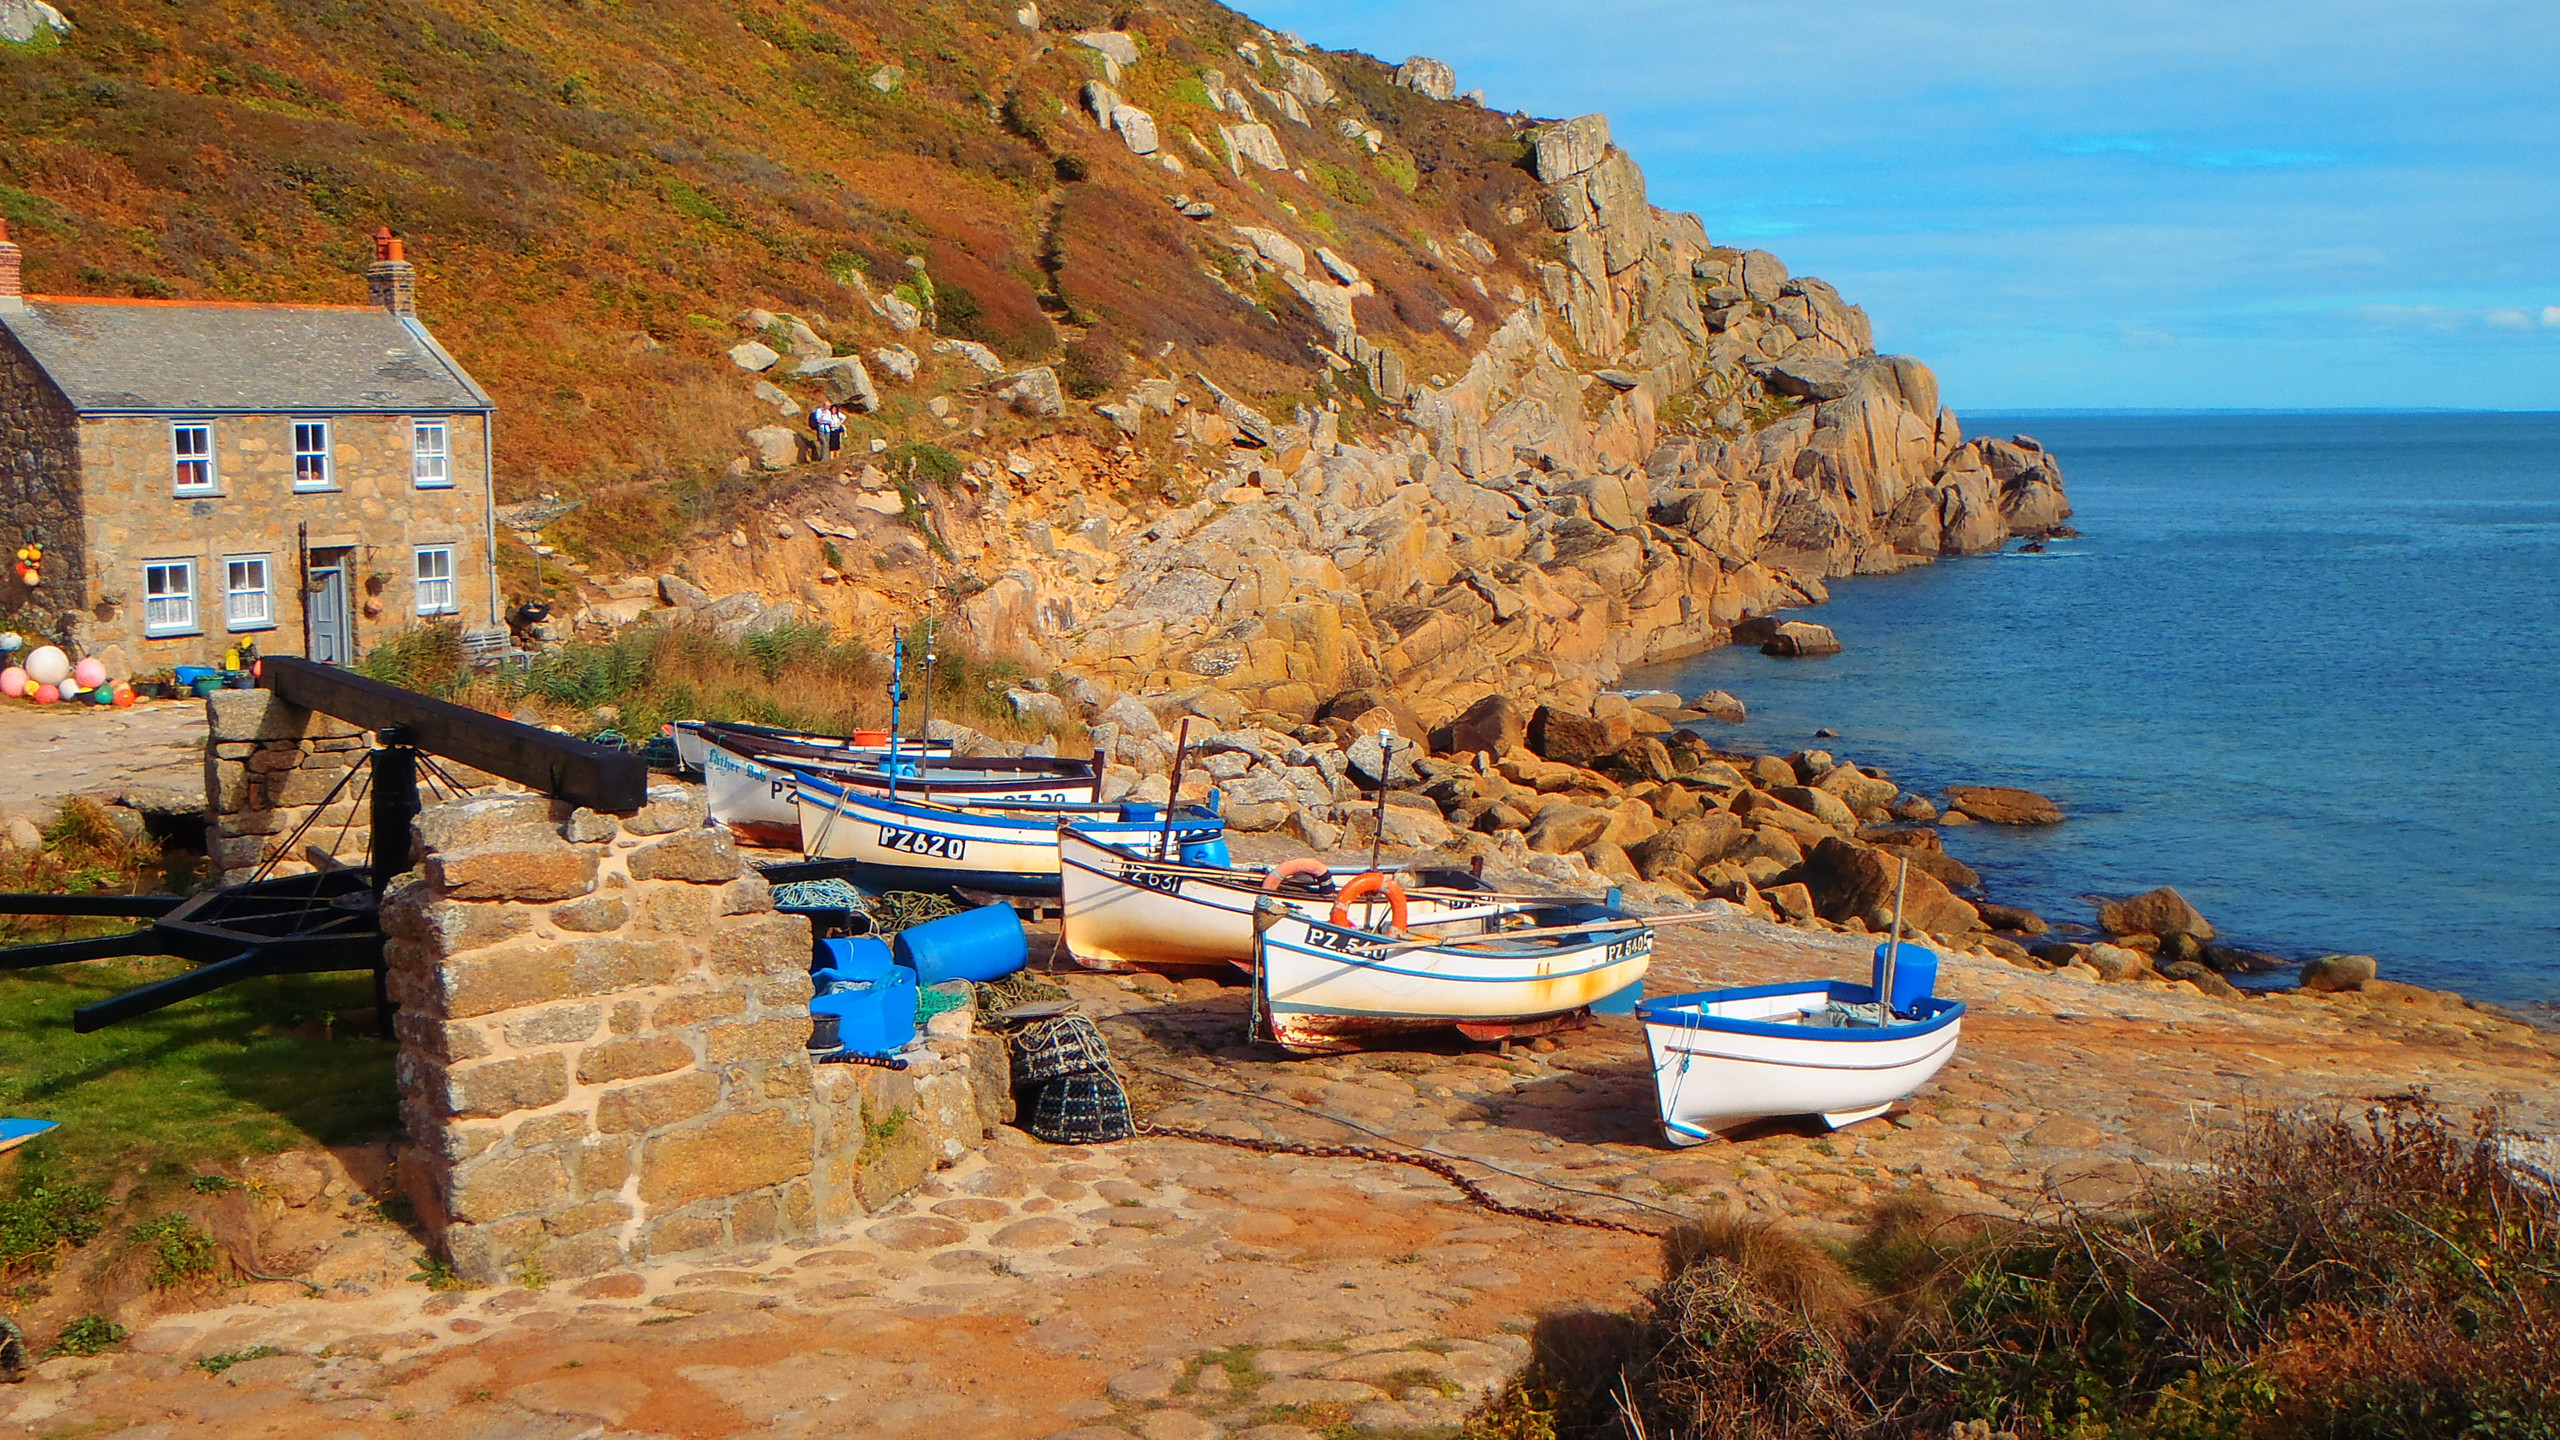 Fishing cove Cornwall